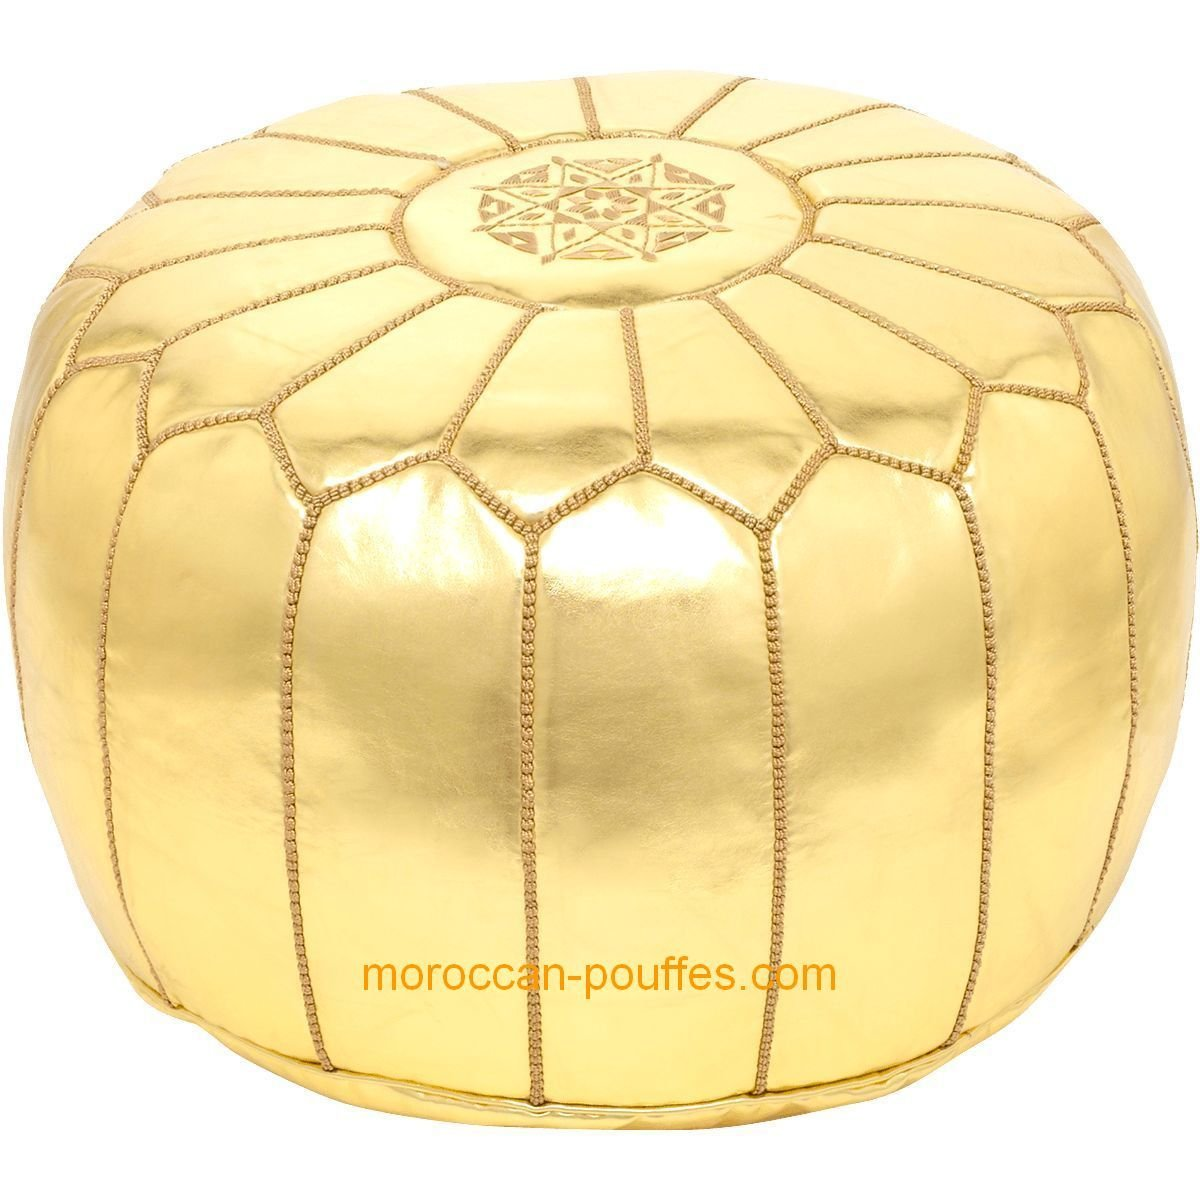 moroccan poufs leather luxury ottomans footstools gold unstuffed by moroccan poufs